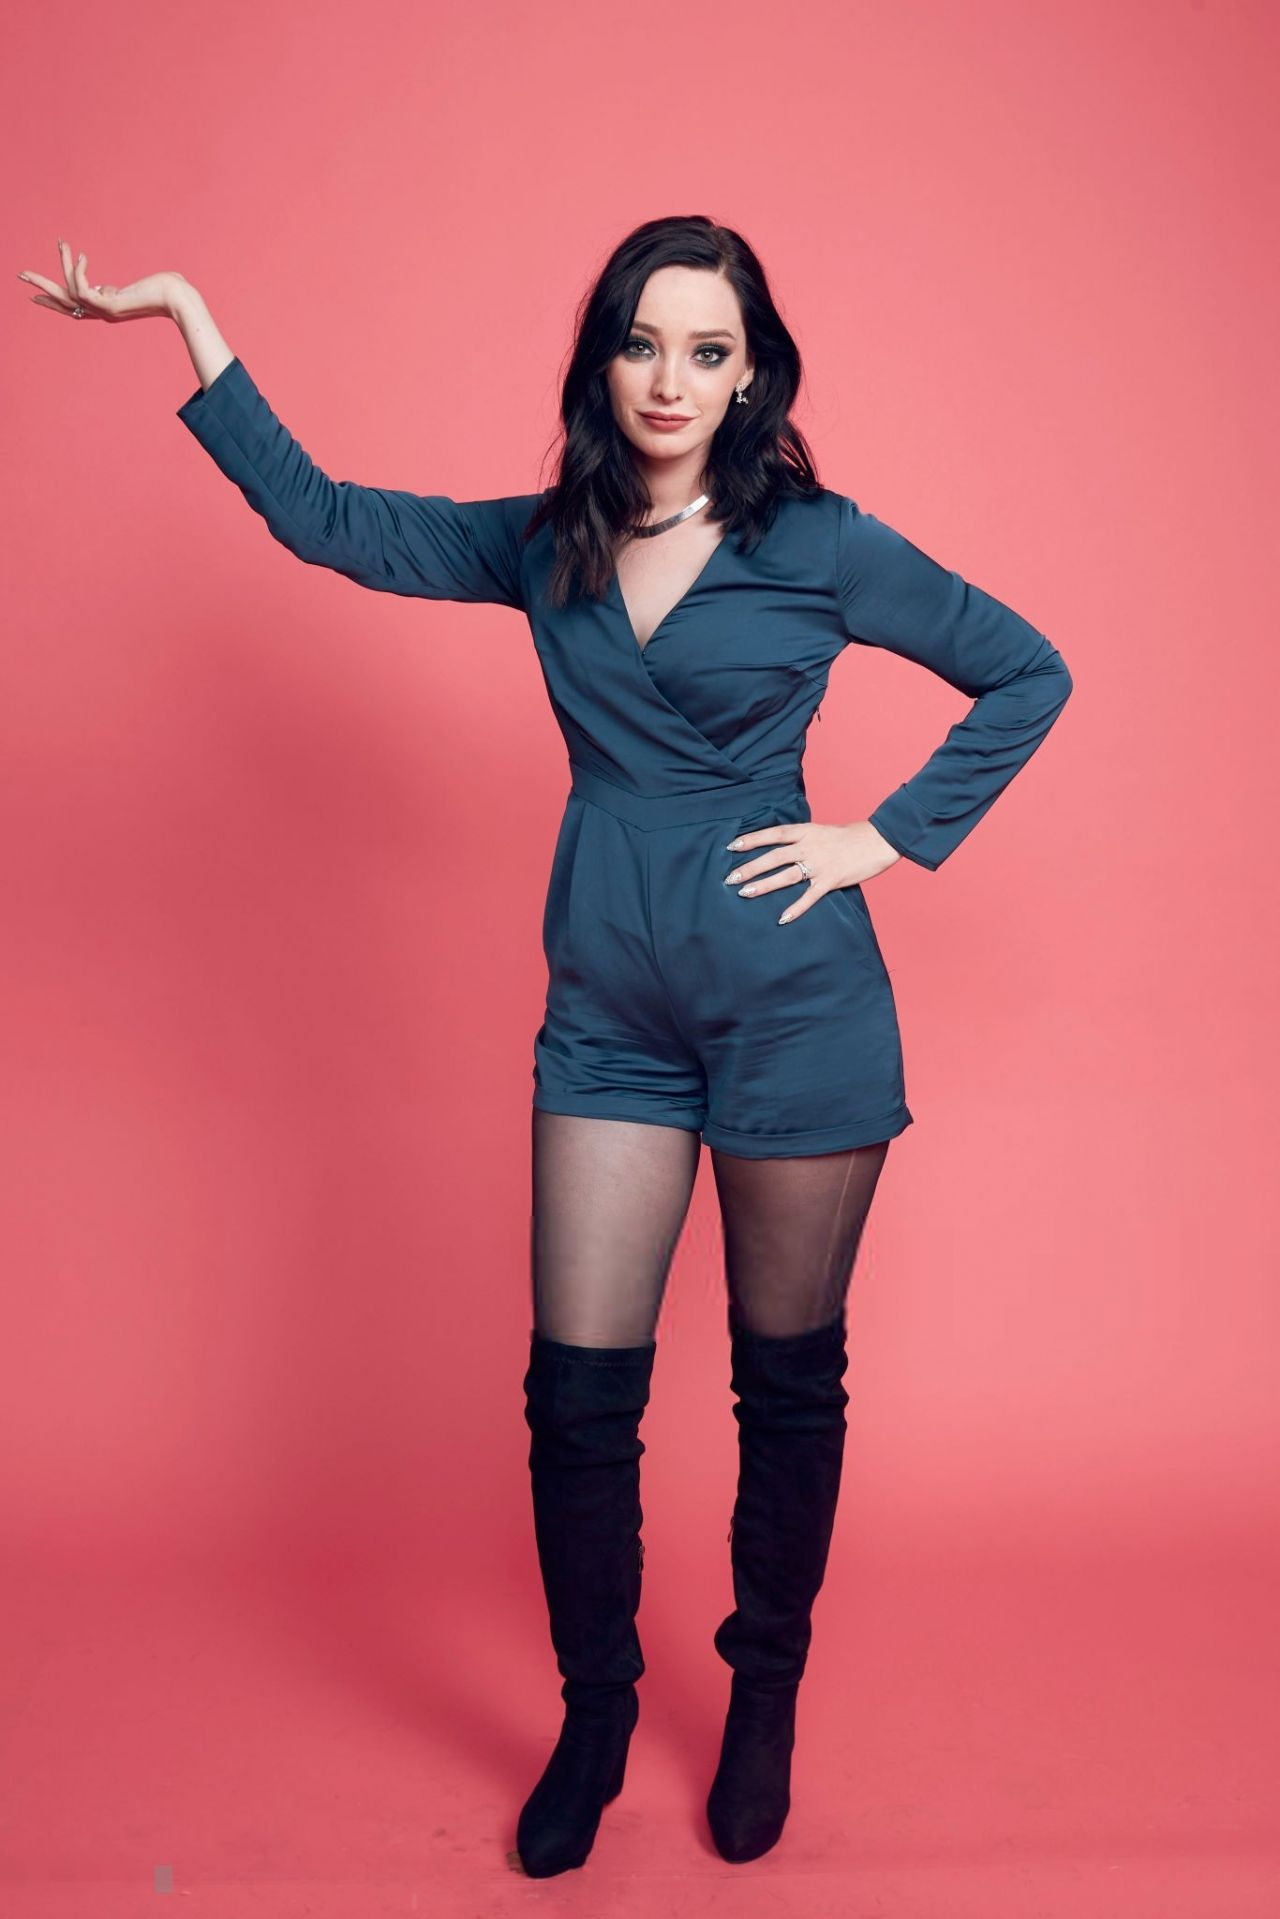 San Diego Mercedes >> Emma Dumont – Photoshoot Powered by Pizza Hut at 2018 San ...